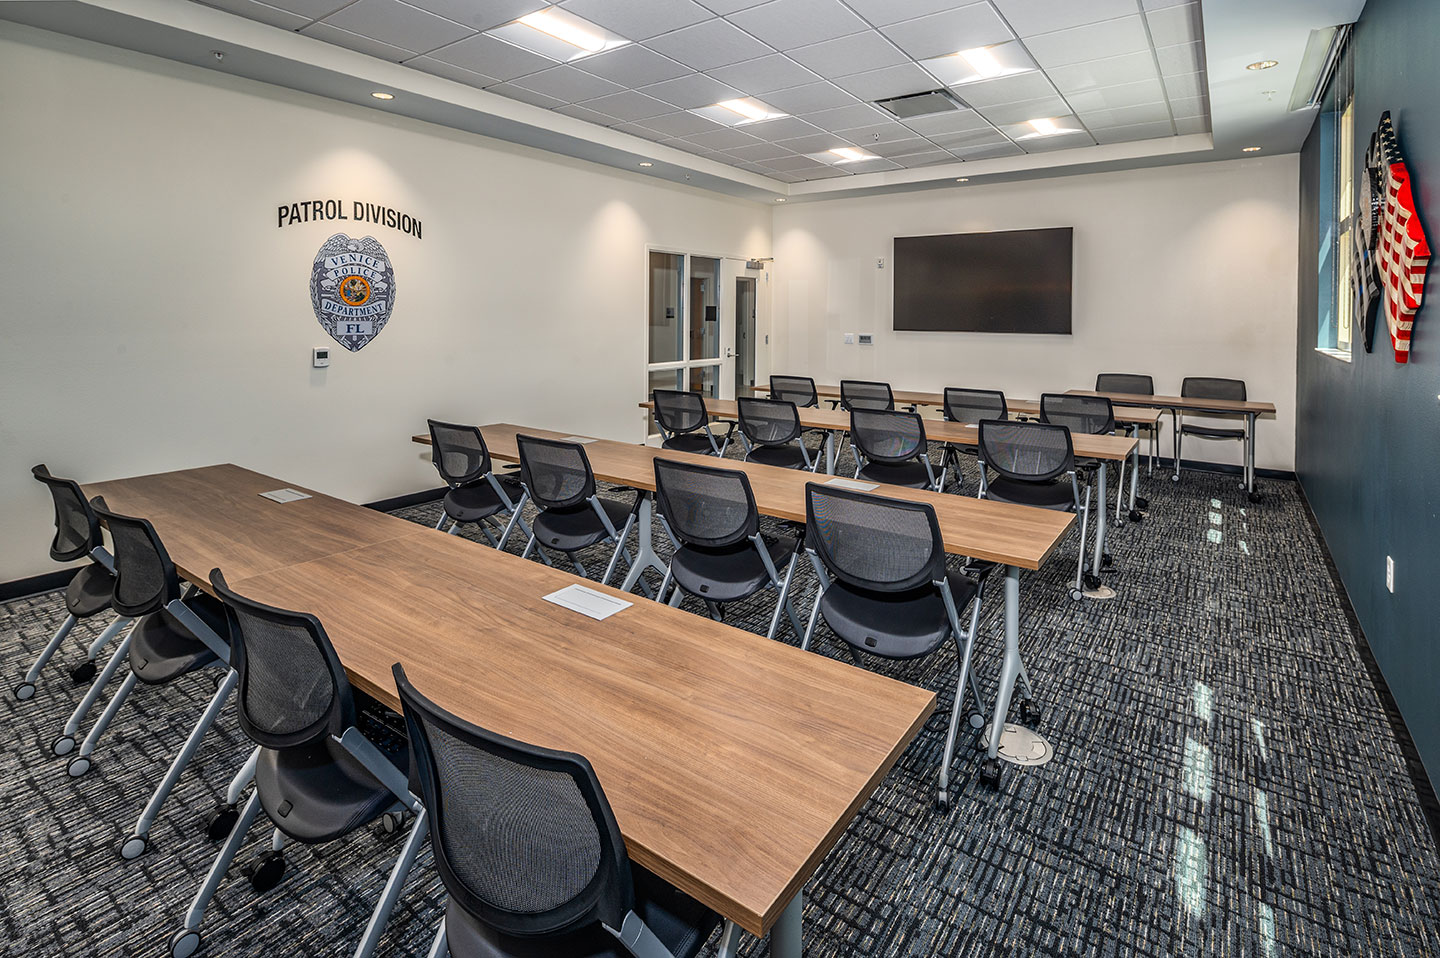 The facility features multipurpose rooms and a media room.